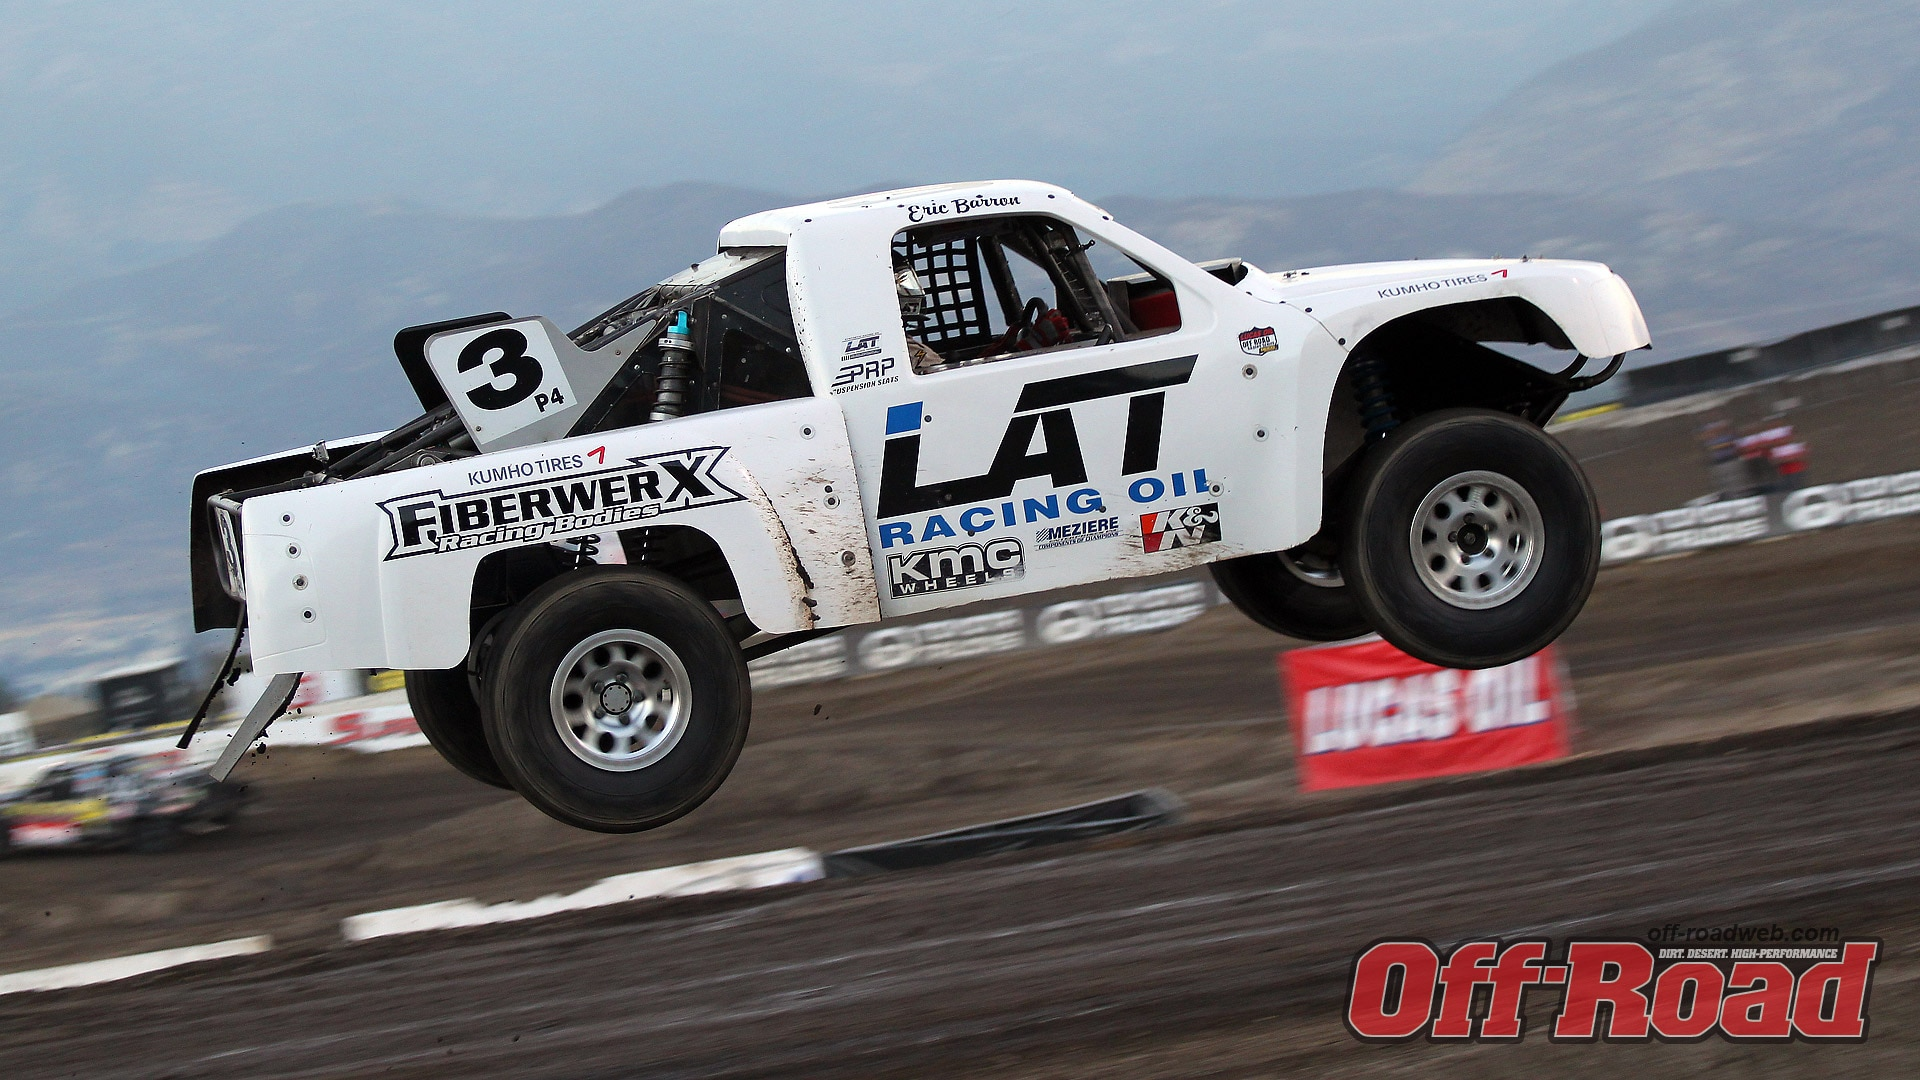 081010or 6742+lucas oil off road racing series+round 9 pro 4 unlimited